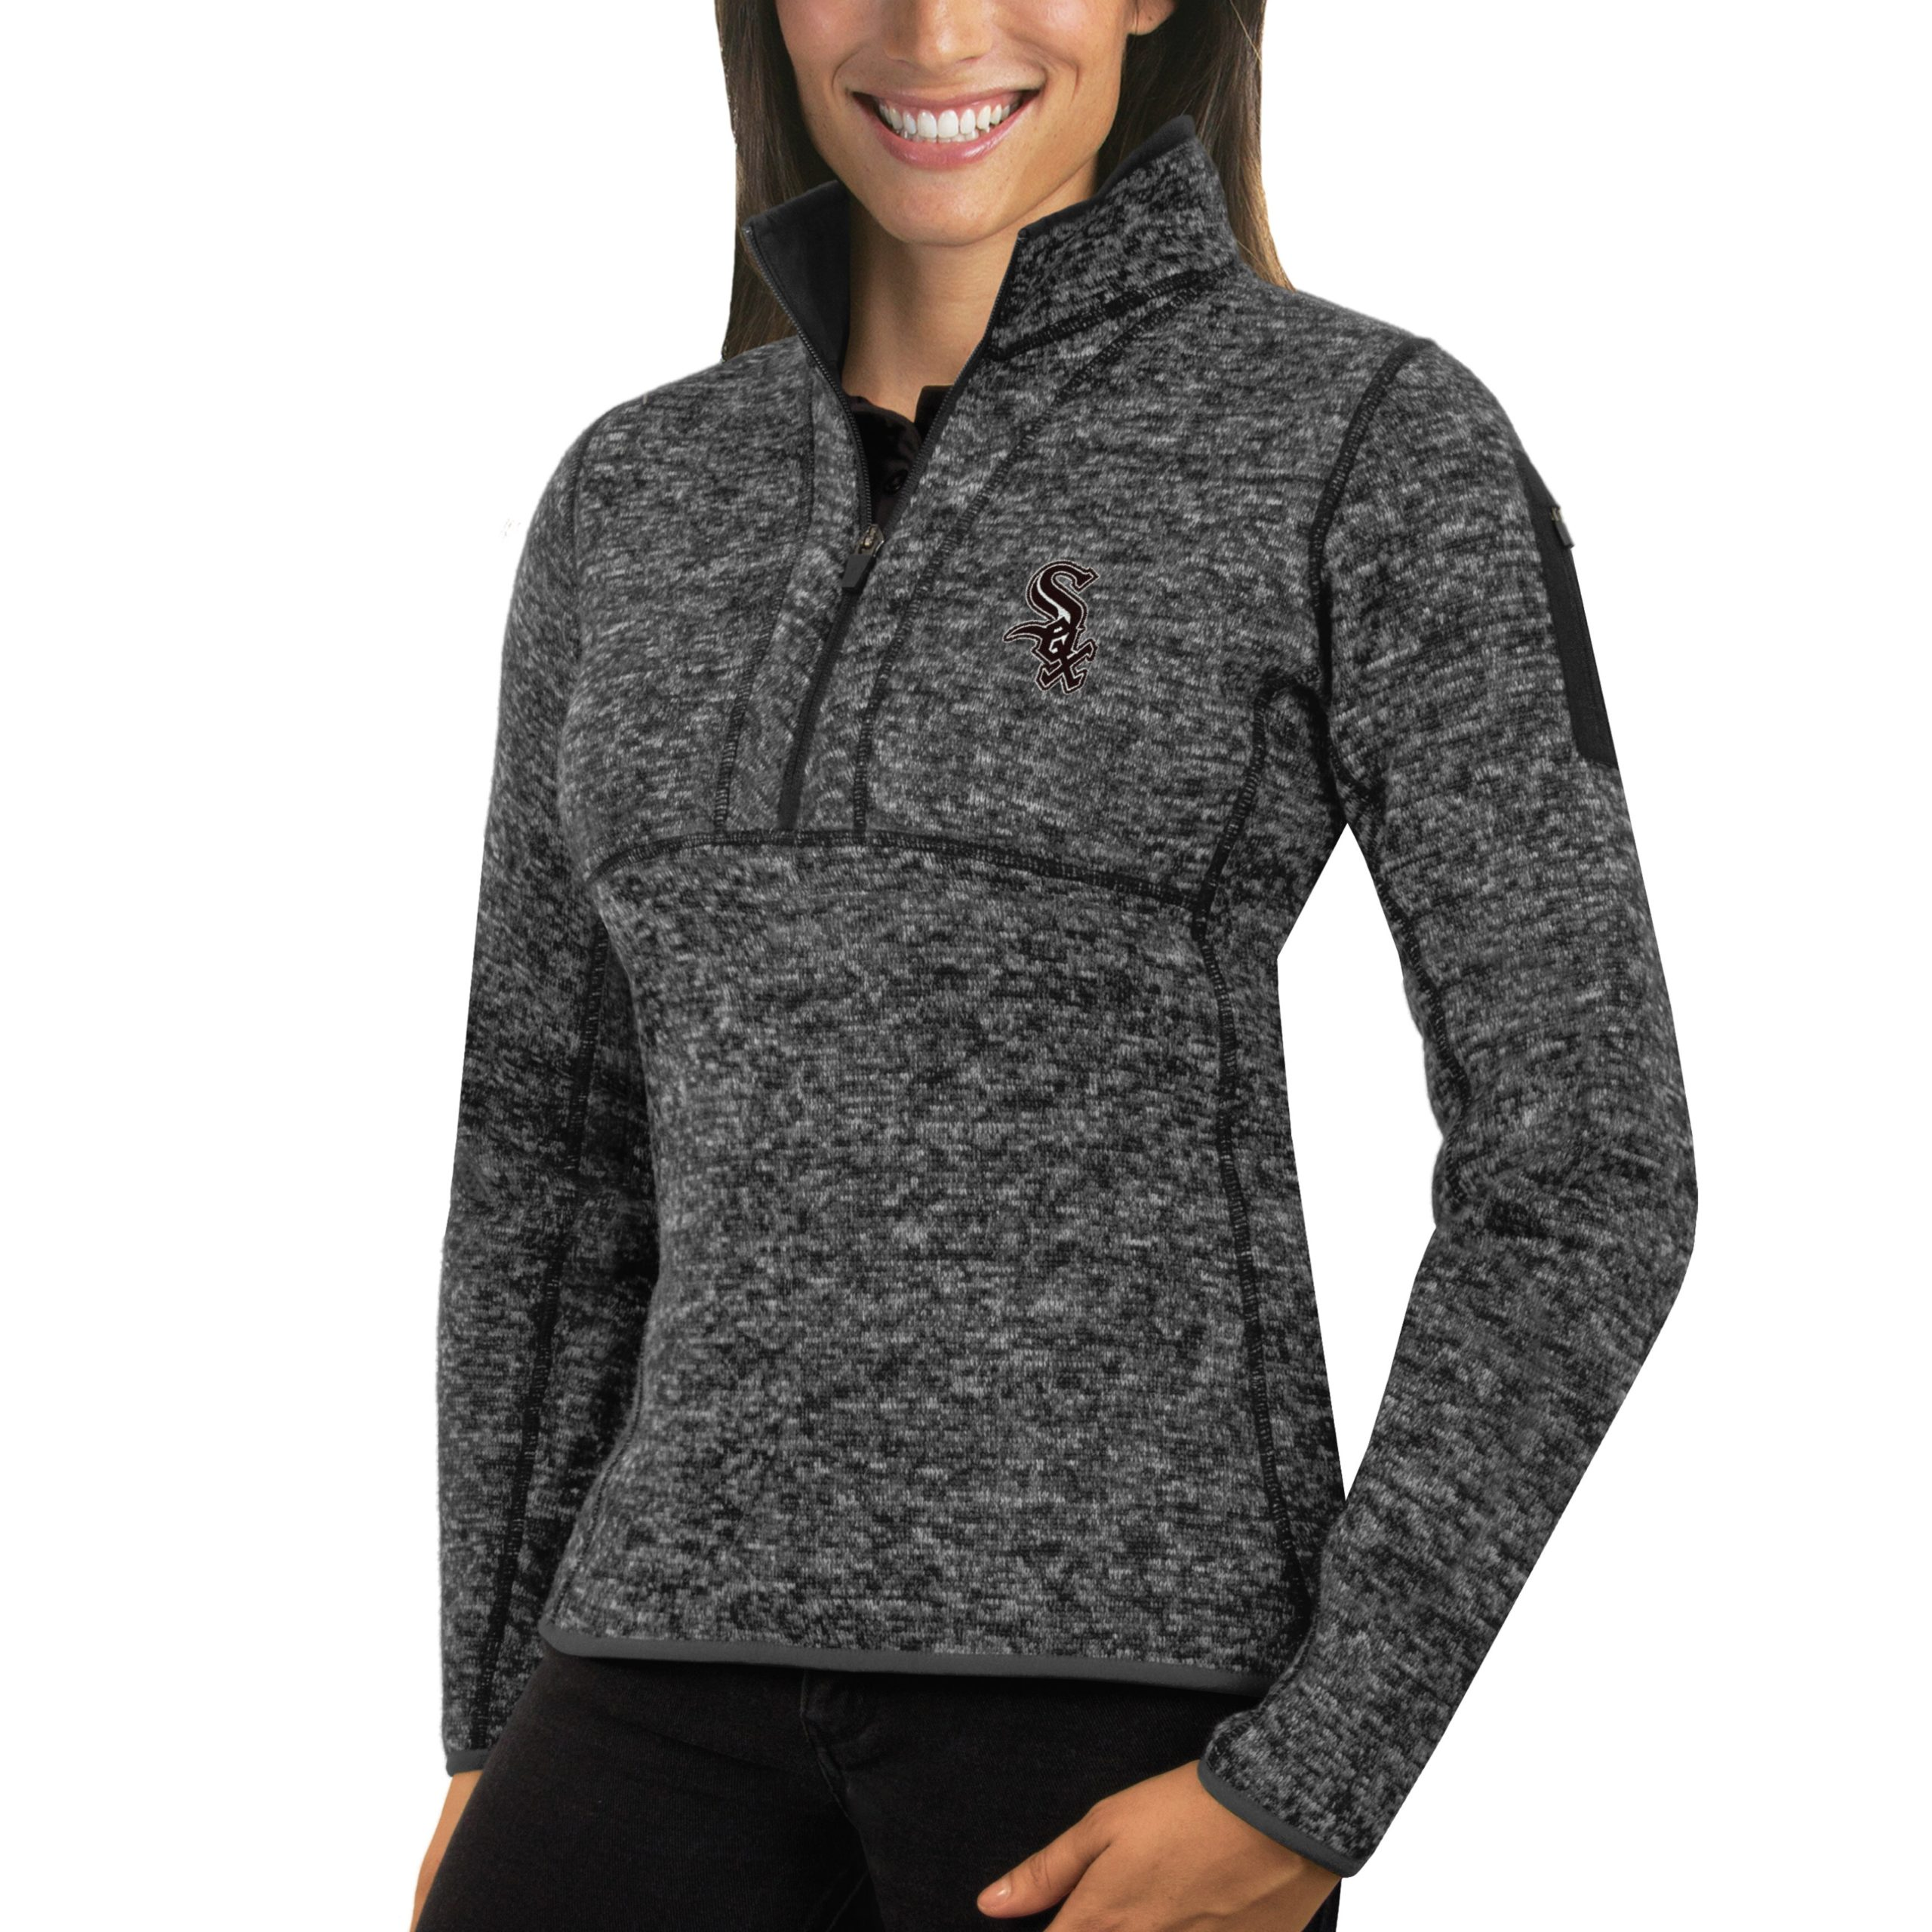 Chicago White Sox Antigua Women's Fortune Half-Zip Pullover Sweater - Heathered Charcoal